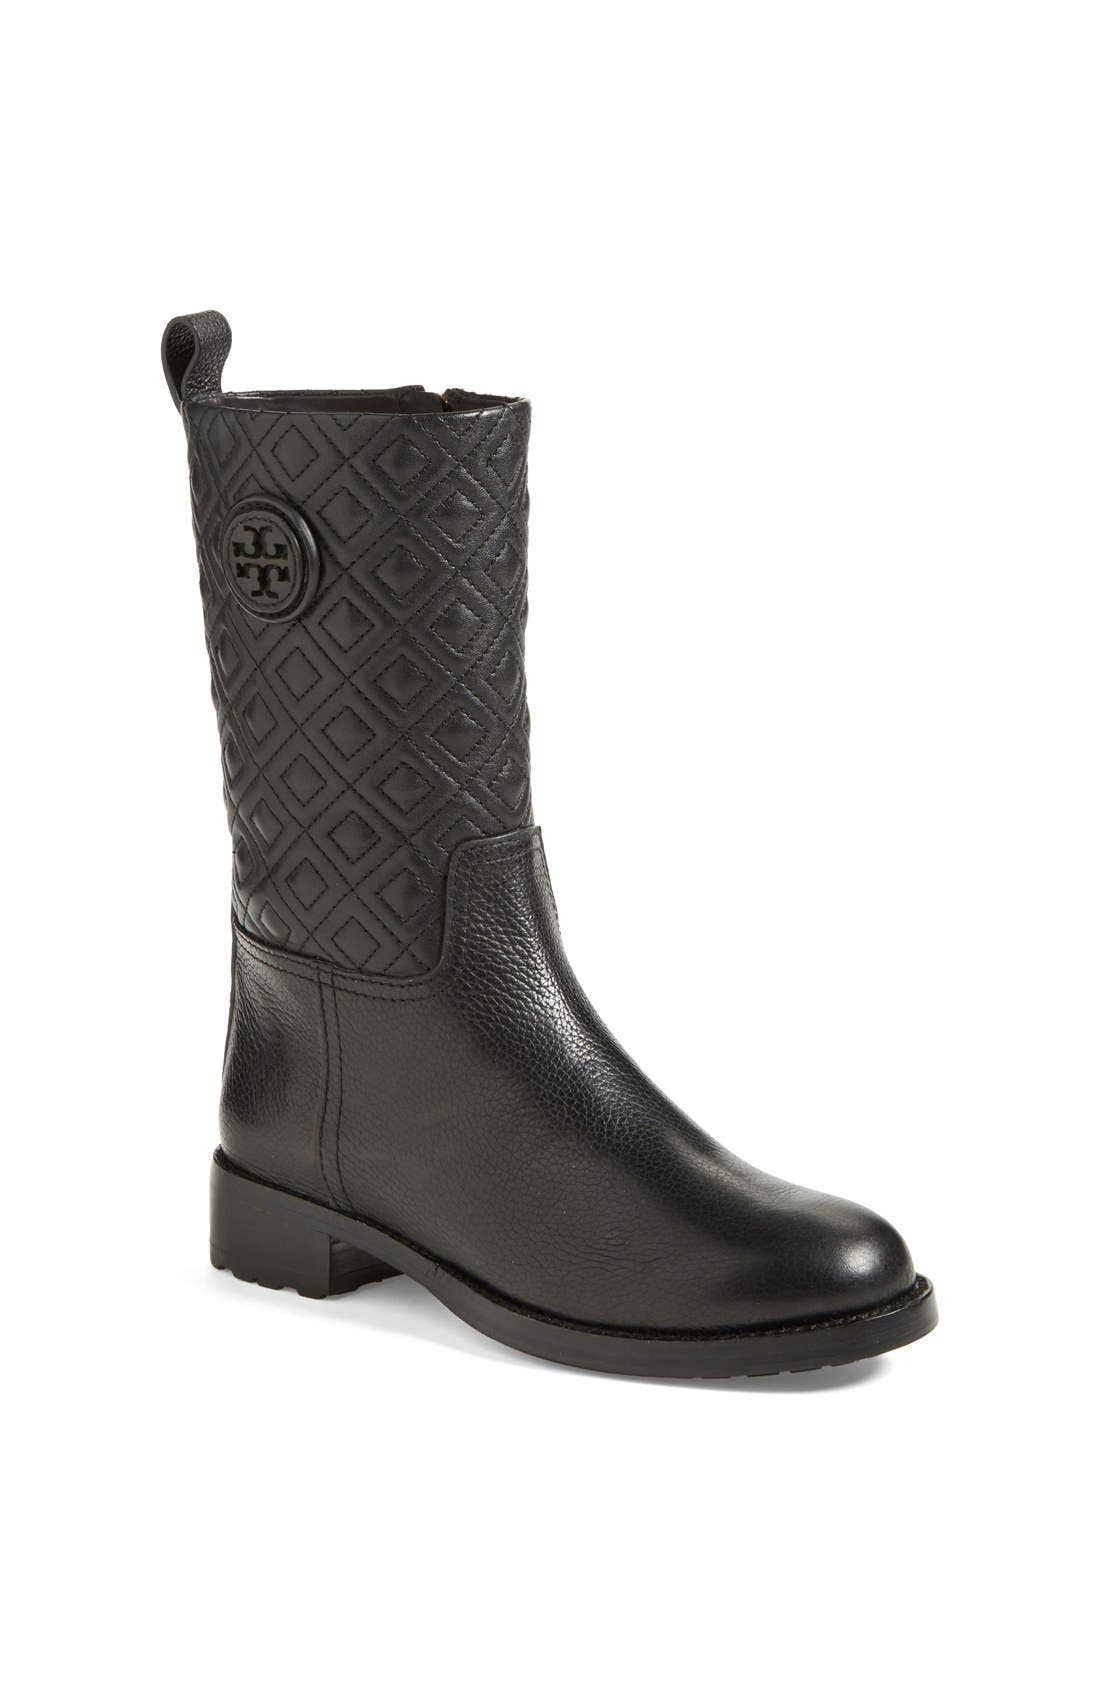 'Marion' Quilted Shaft Leather Boot,                             Main thumbnail 1, color,                             001